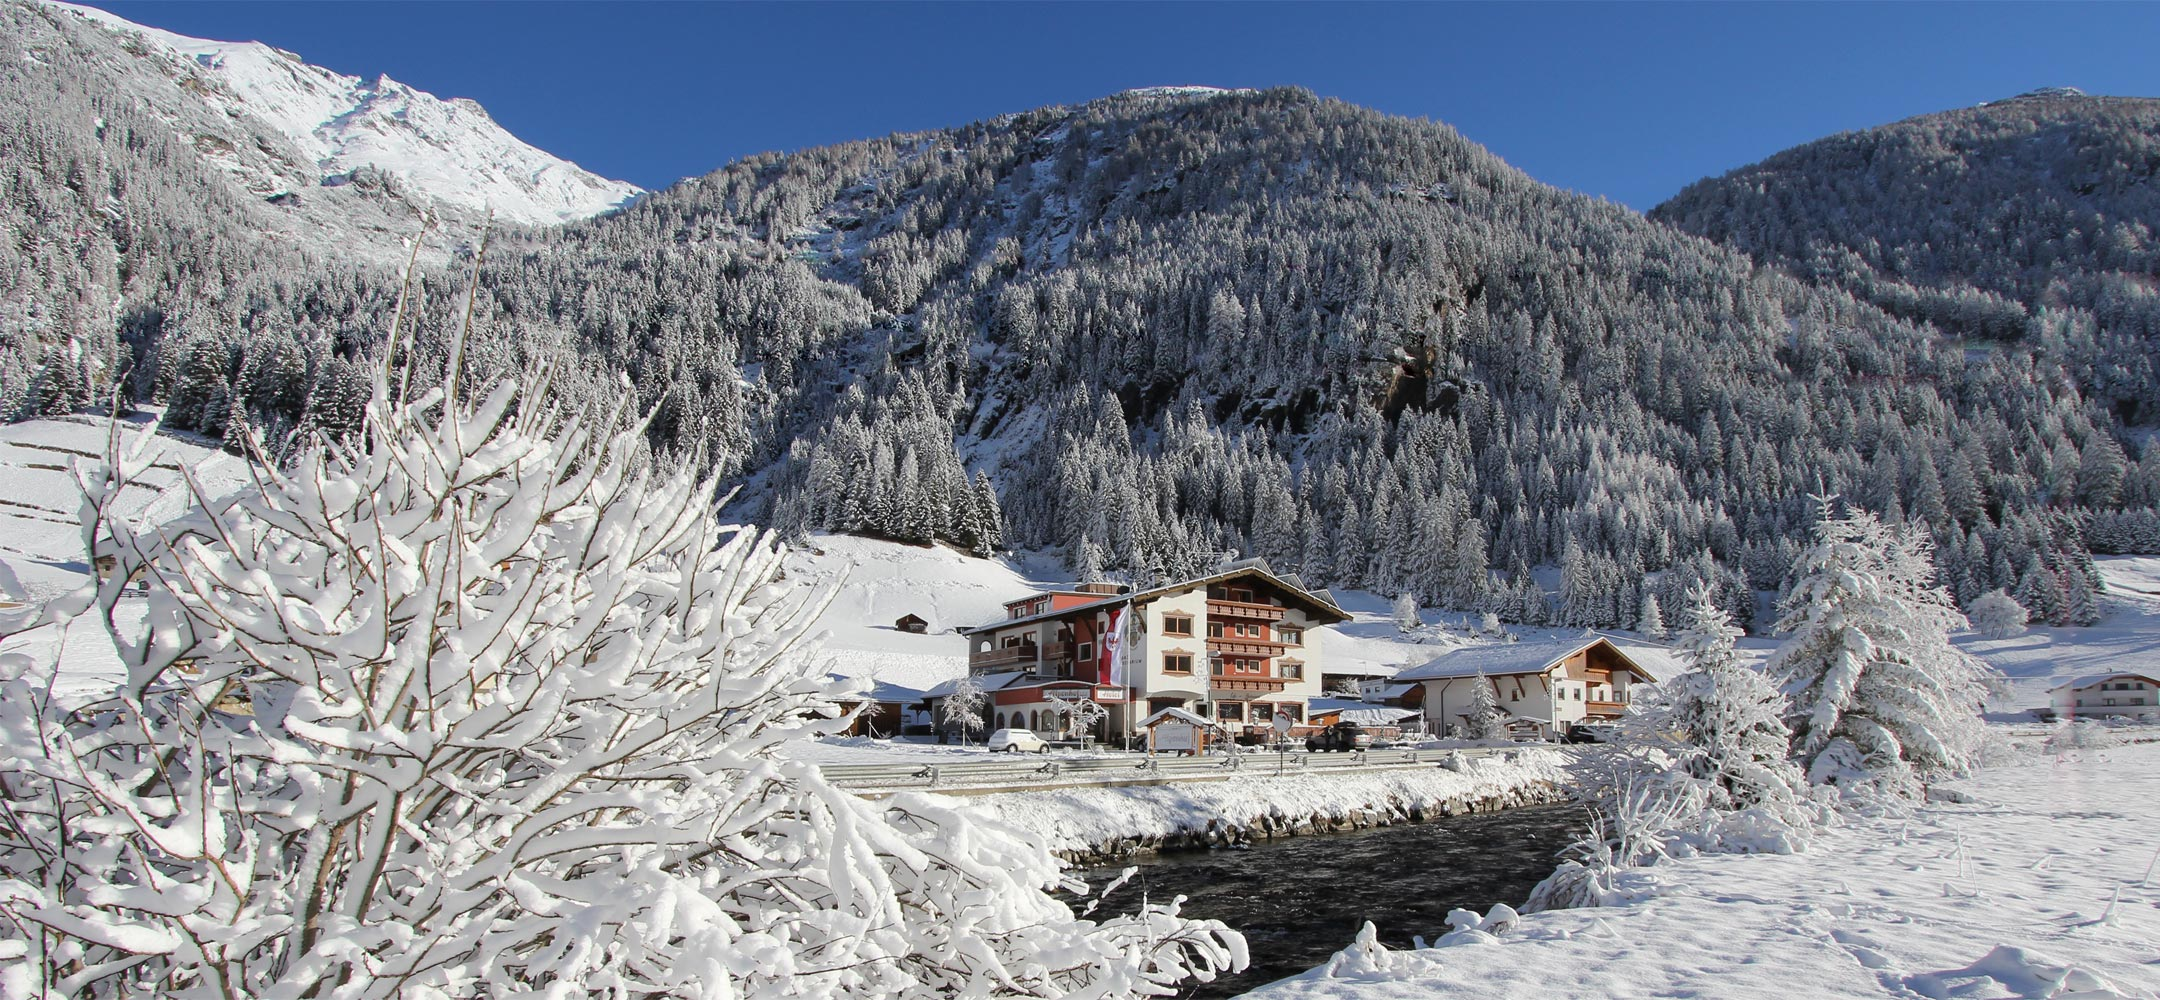 Welcome to the Hotel Alpenhof in the Pitztal